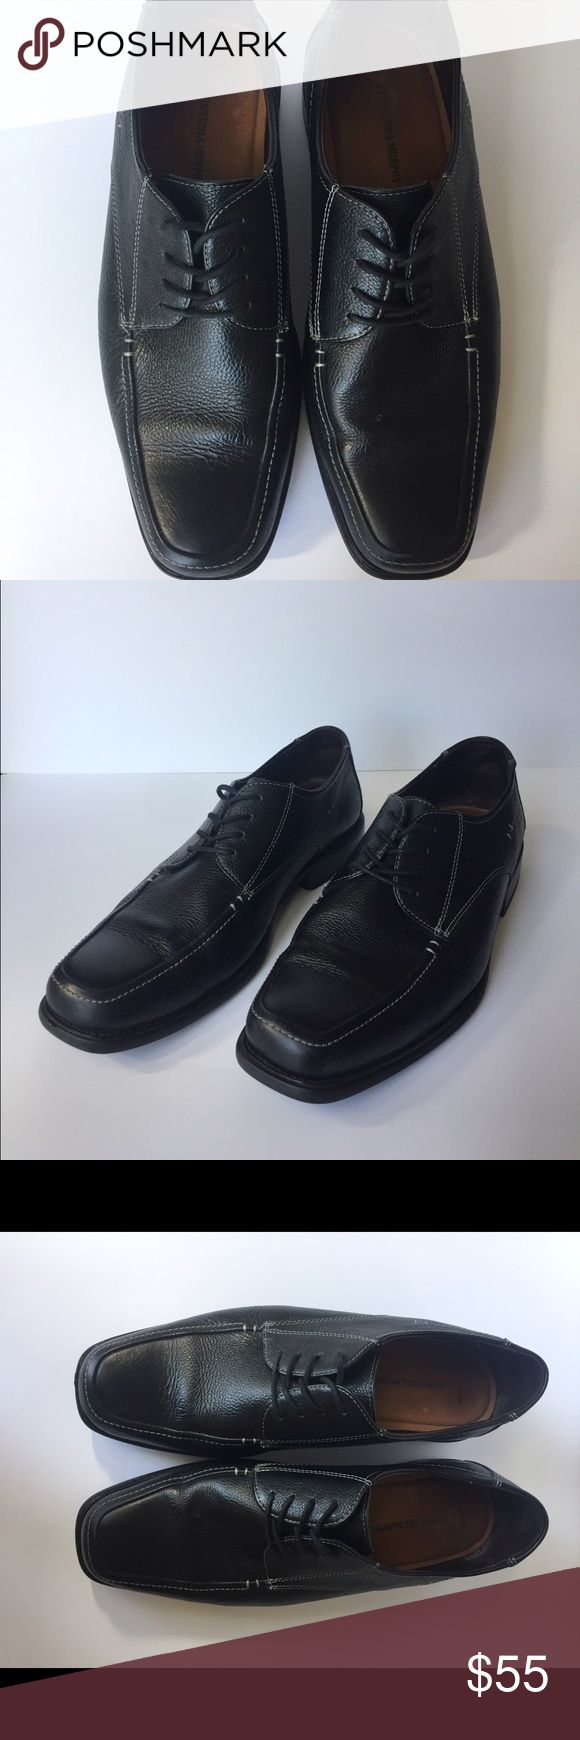 EUC Johnston & Murphy Black Dress Shoes These shoes have only been worn a few times. Excellent condition. They feature soft tumbled leather, lightweight construction, sheepskin lining, J&M Flex outsold.  👟👔👞👗👛👠👙👕Bundle & Save 20% Johnston & Murphy Shoes